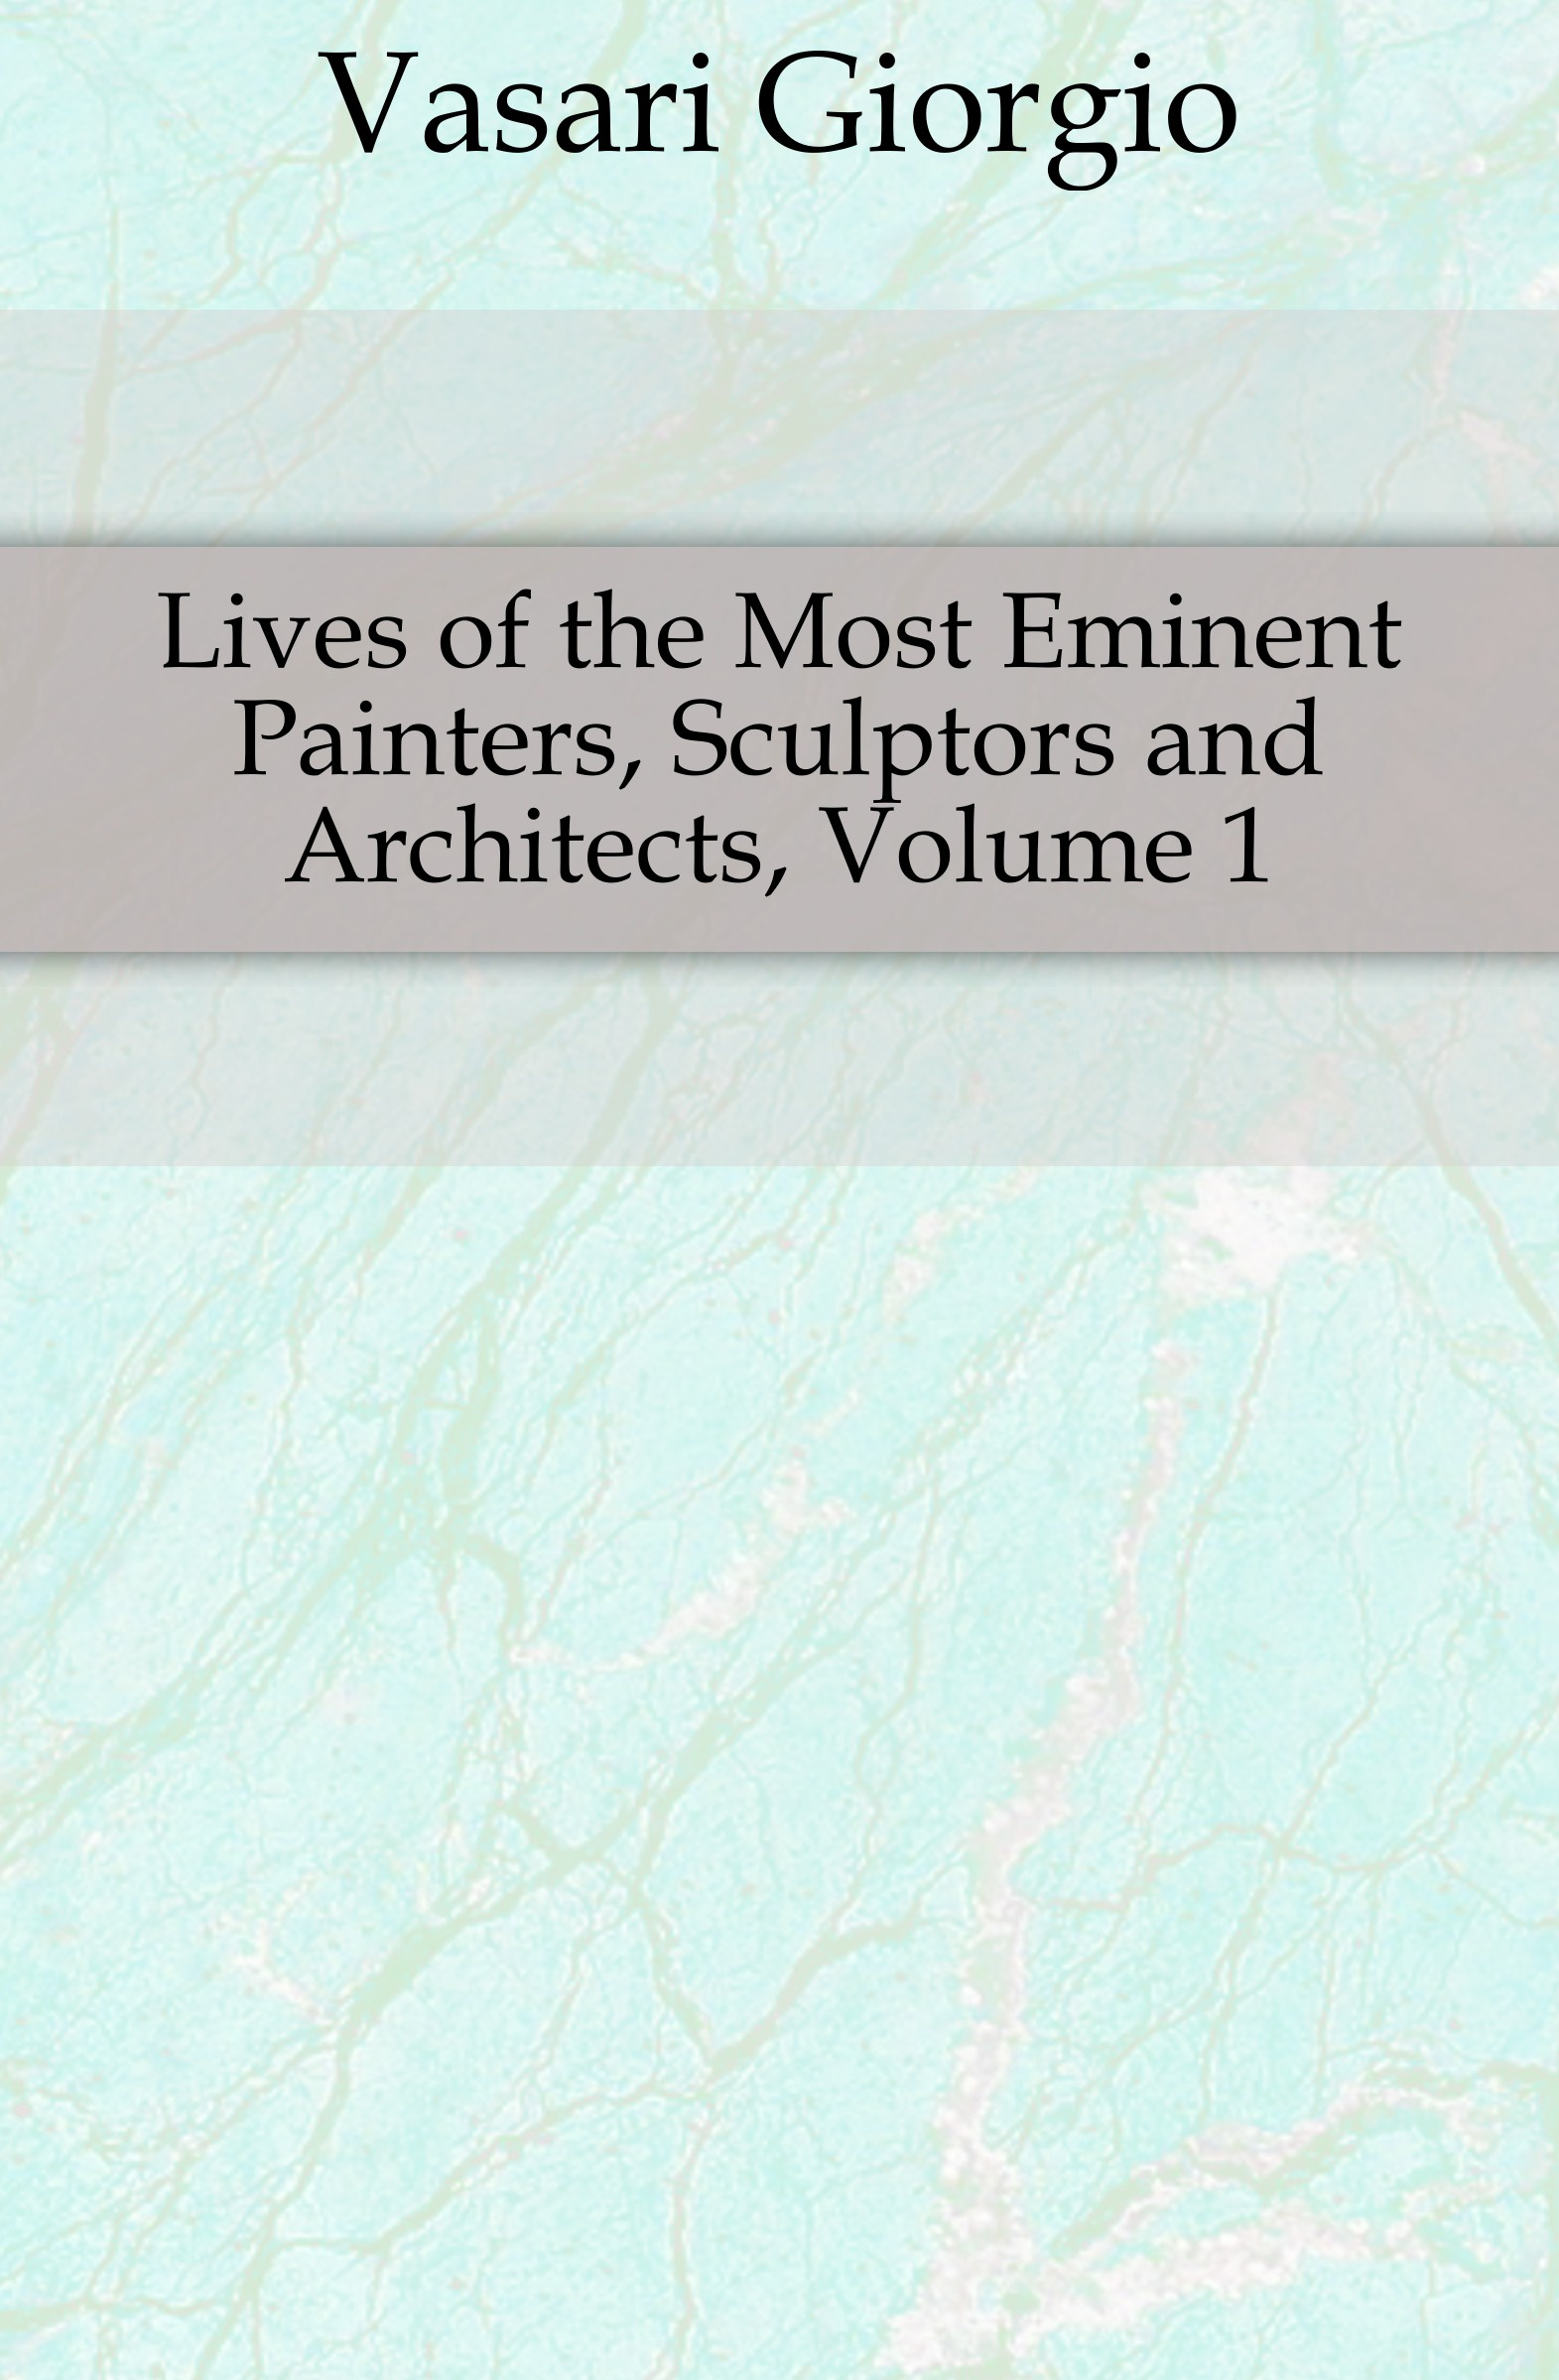 Vasari Giorgio Lives of the Most Eminent Painters, Sculptors and Architects, Volume 1